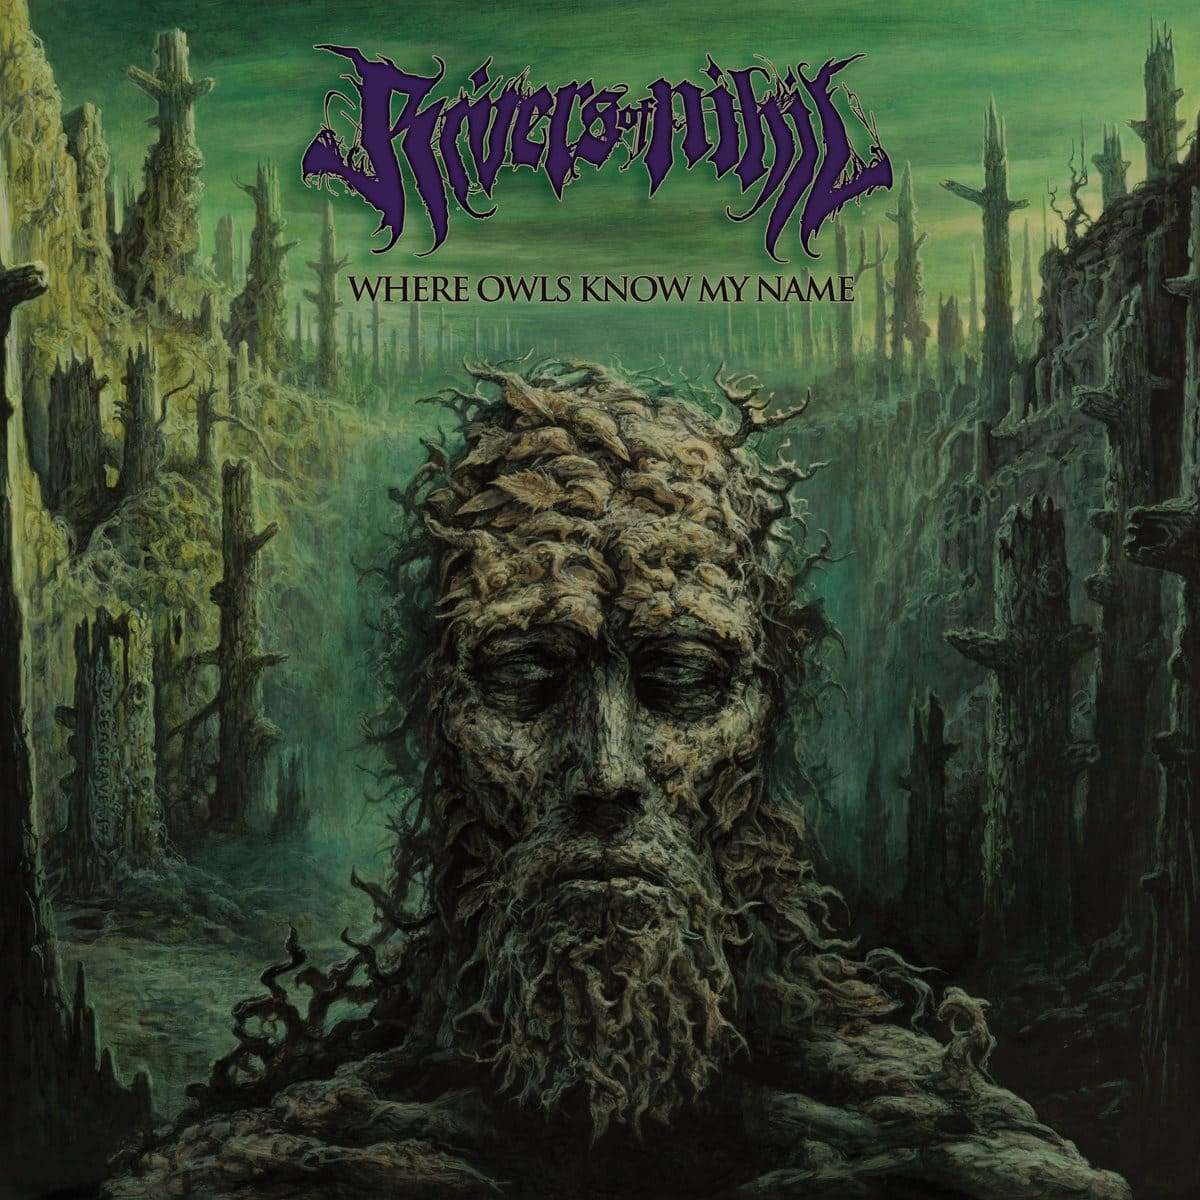 RIVERS OF NIHIL (USA) – Where owls know my name, 2018